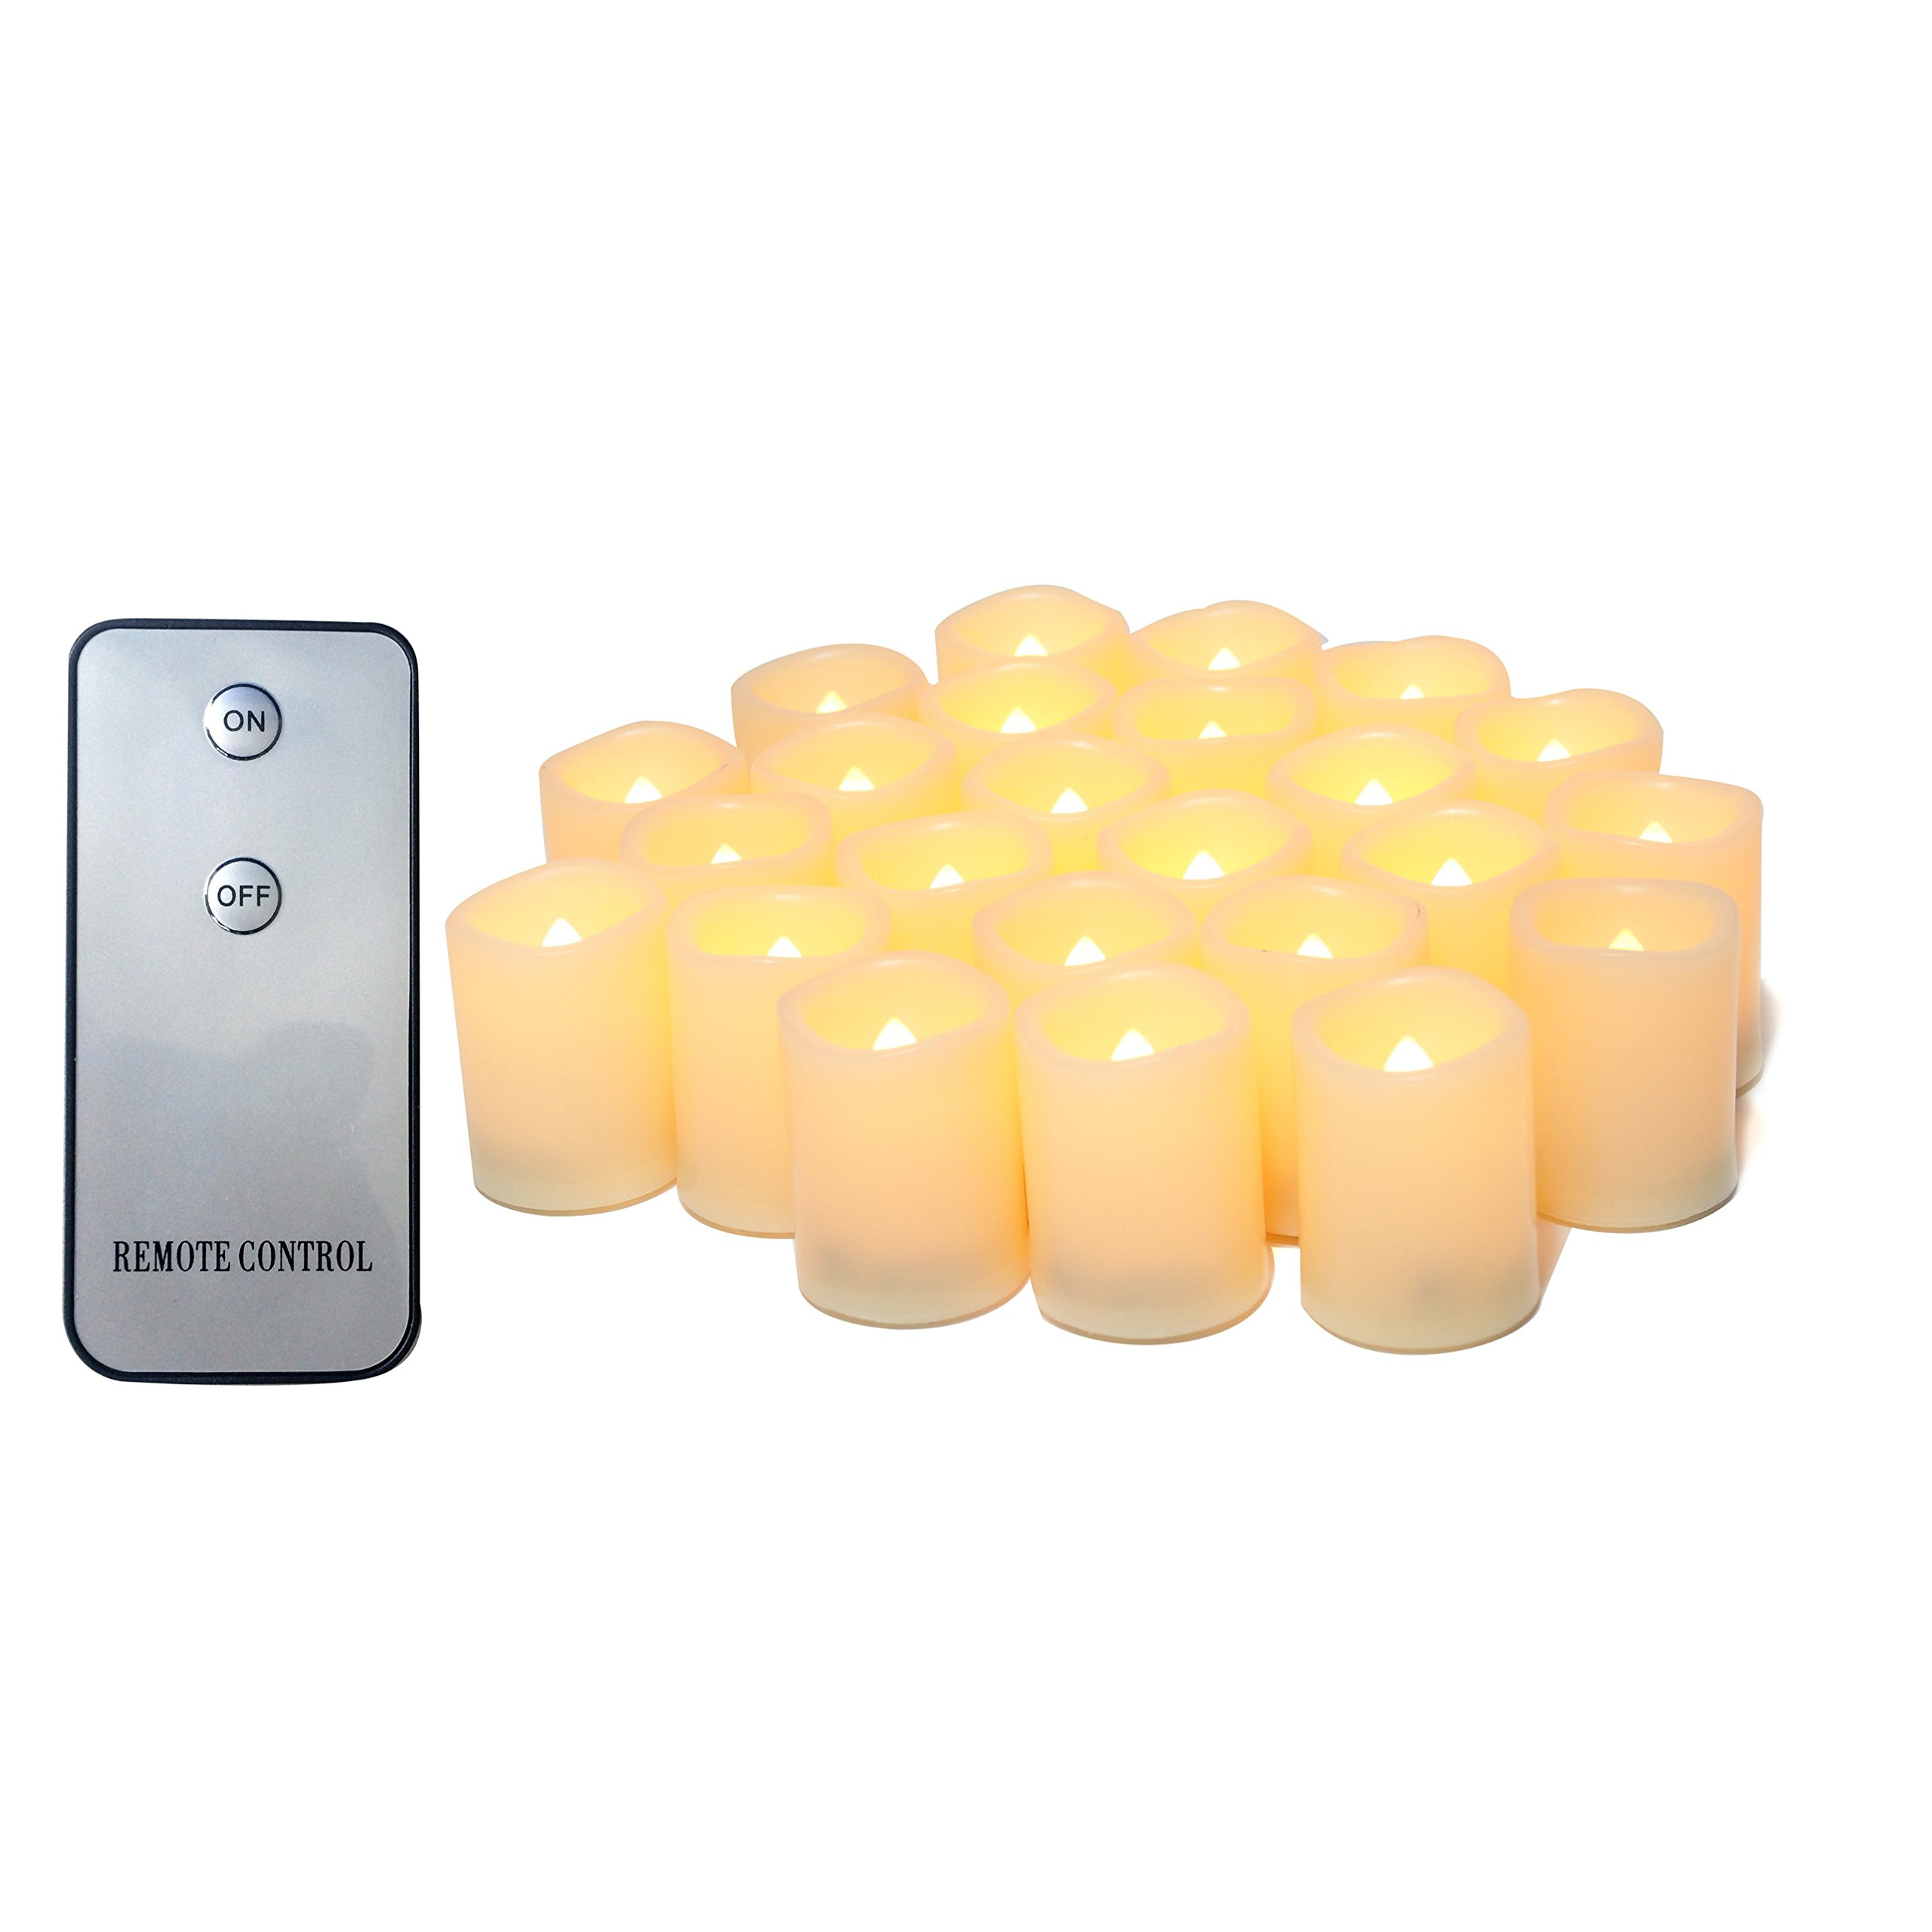 """Candle Choice 24-Pack Realistic Flameless Votive Candles Bright Battery Operated LED Votives with Remote 1.5""""x2"""" Melted Edge Long Lasting Party Wedding Birthday Holiday Home Décor Centerpiece Gift by CANDLE CHOICE"""